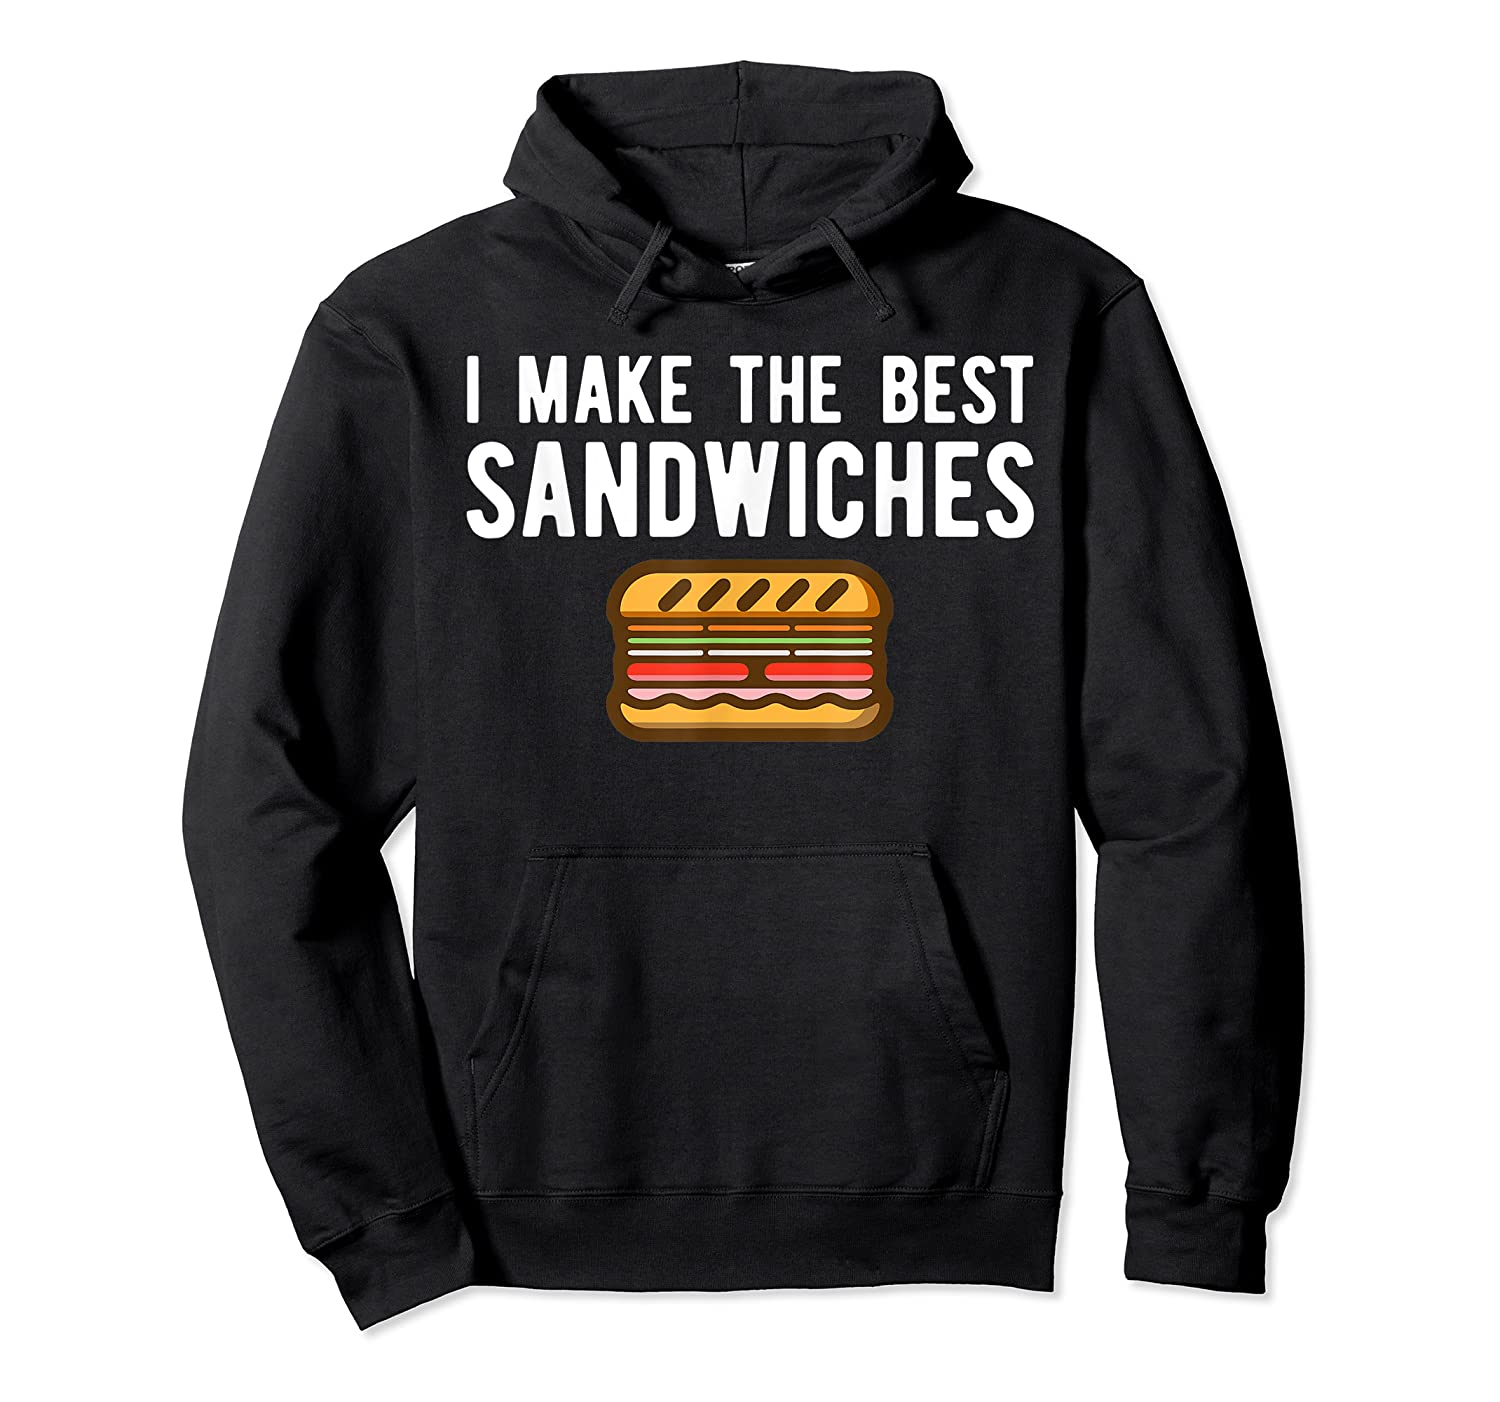 Making Best Sandwiches Shirt Funny Sandwich Tee Gift Unisex Pullover Hoodie